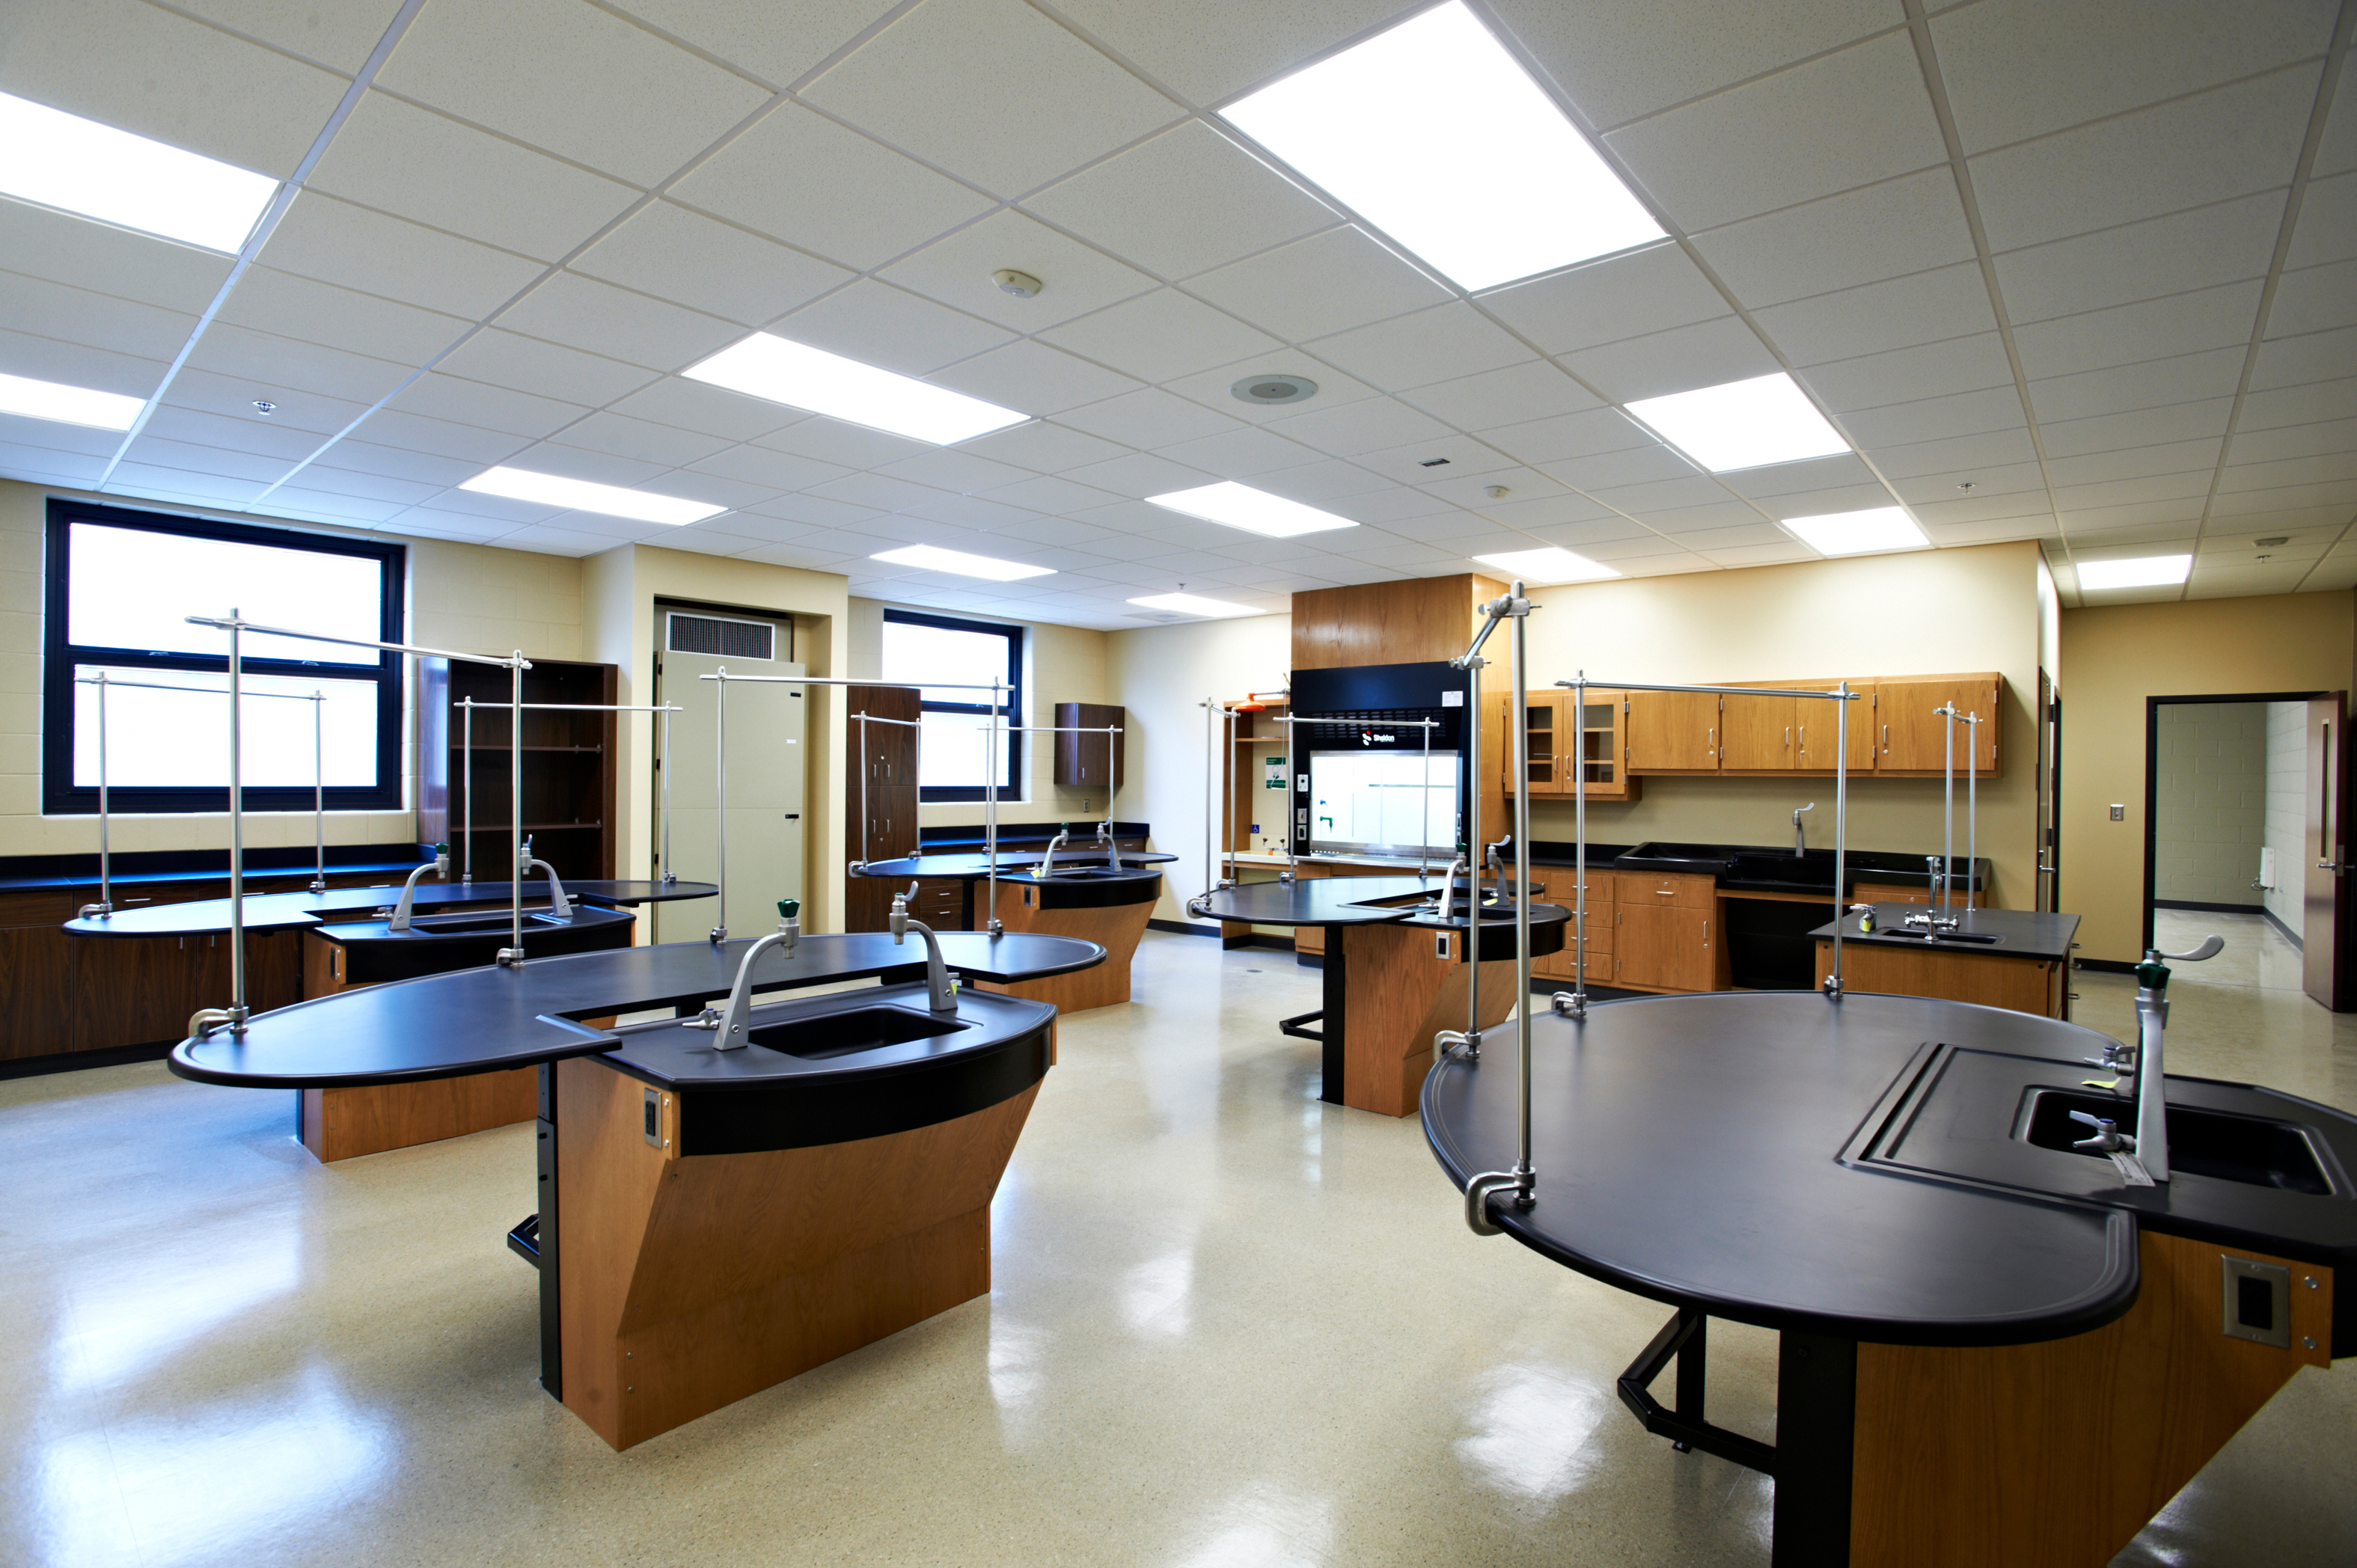 4. SCHS science lab